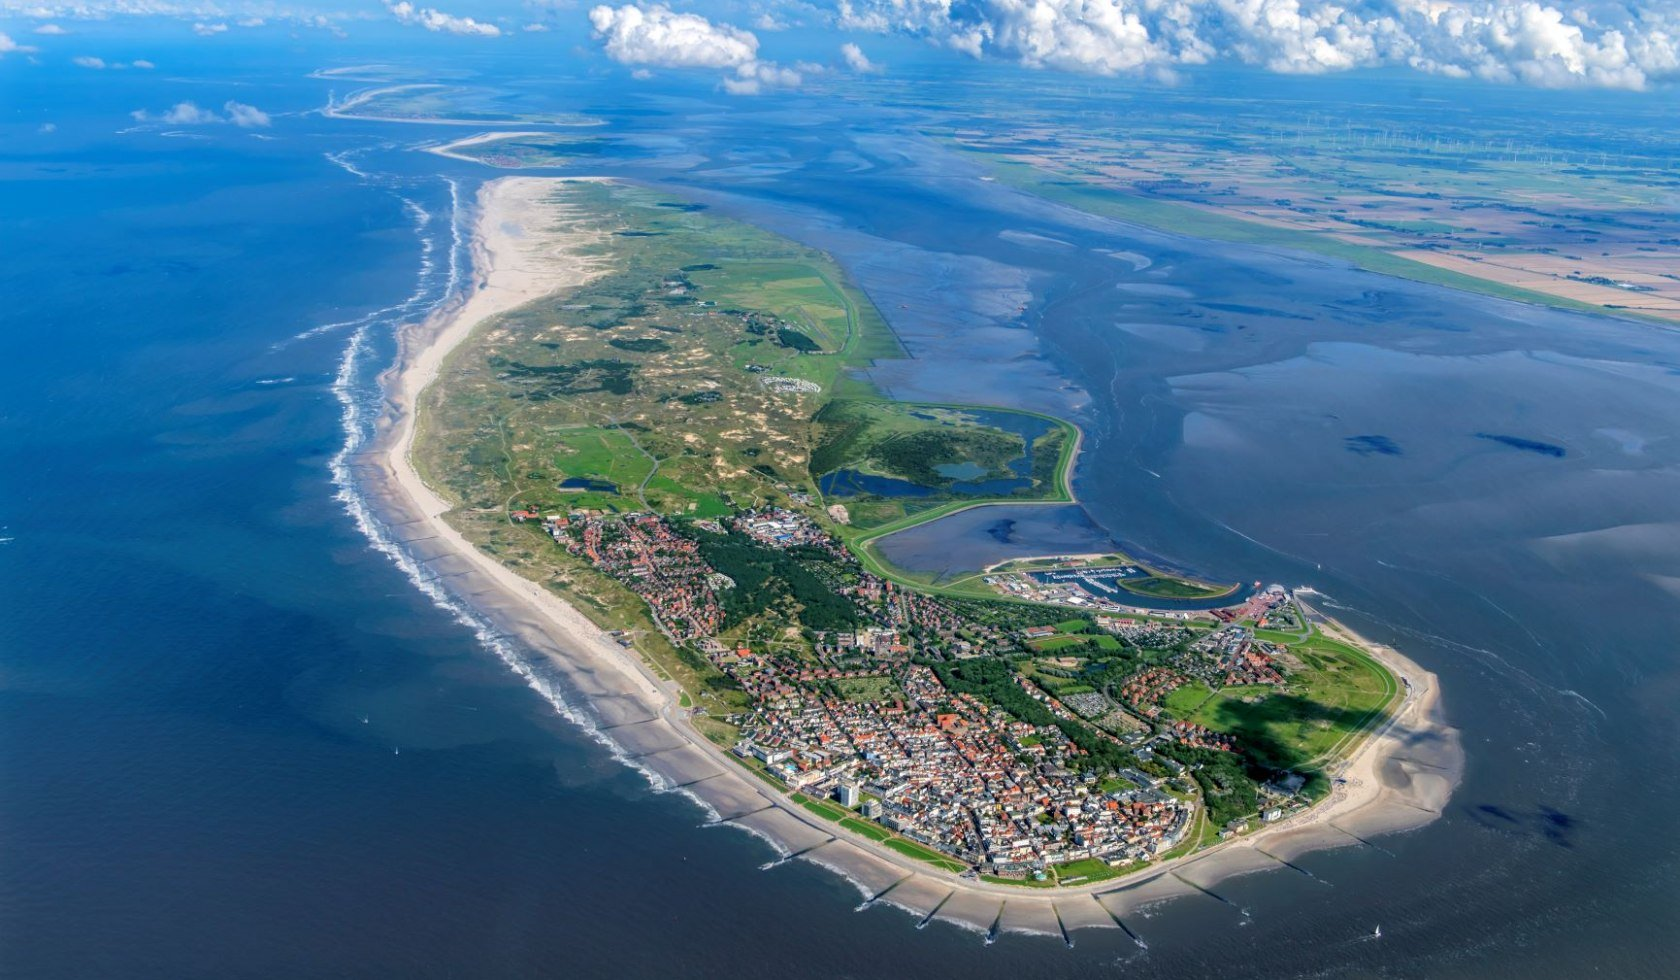 Norderney aerial view